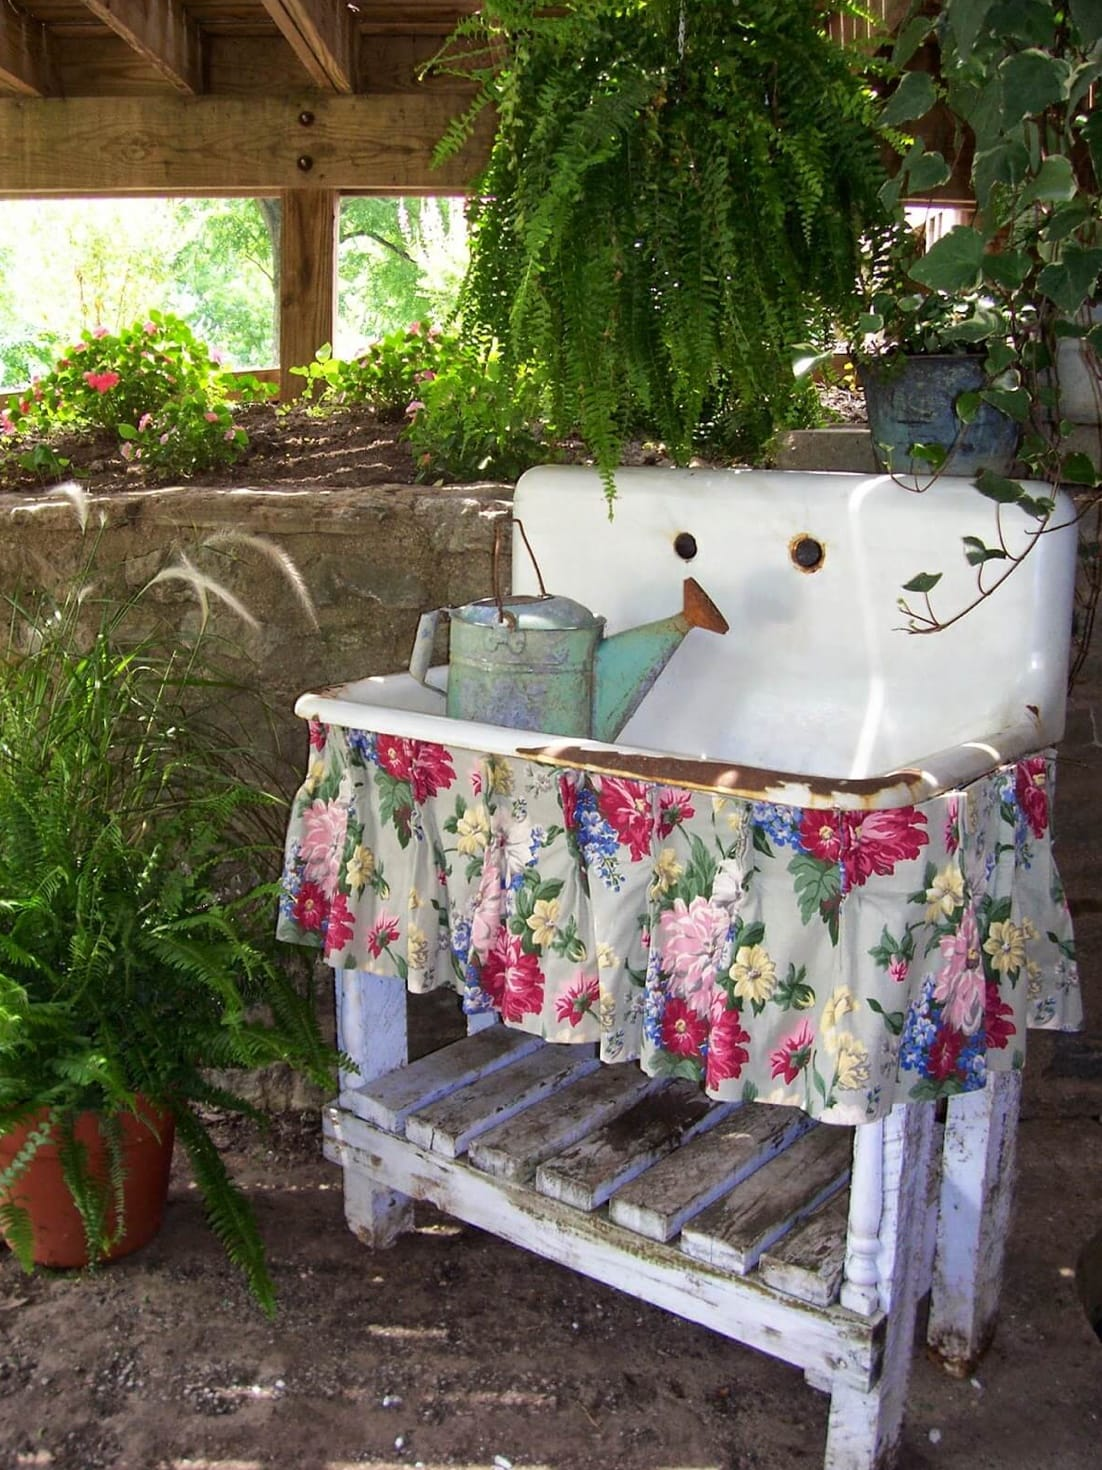 Best shabby chic vintage decor ideas #25